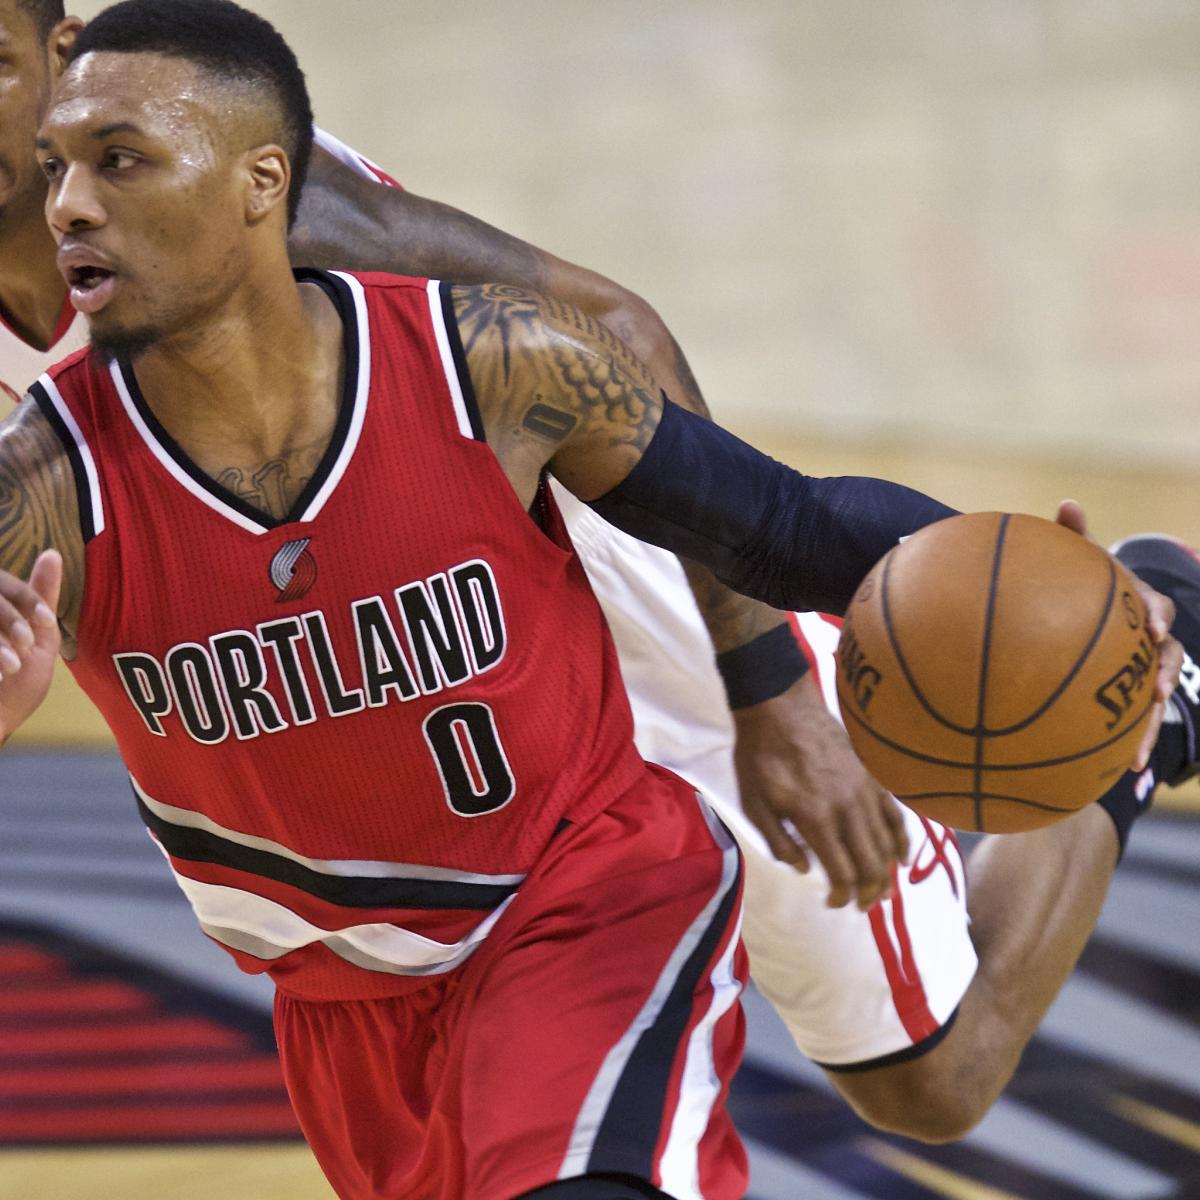 Portland Blazers Last Game: Trail Blazers Vs. Raptors: Score, Video Highlights And